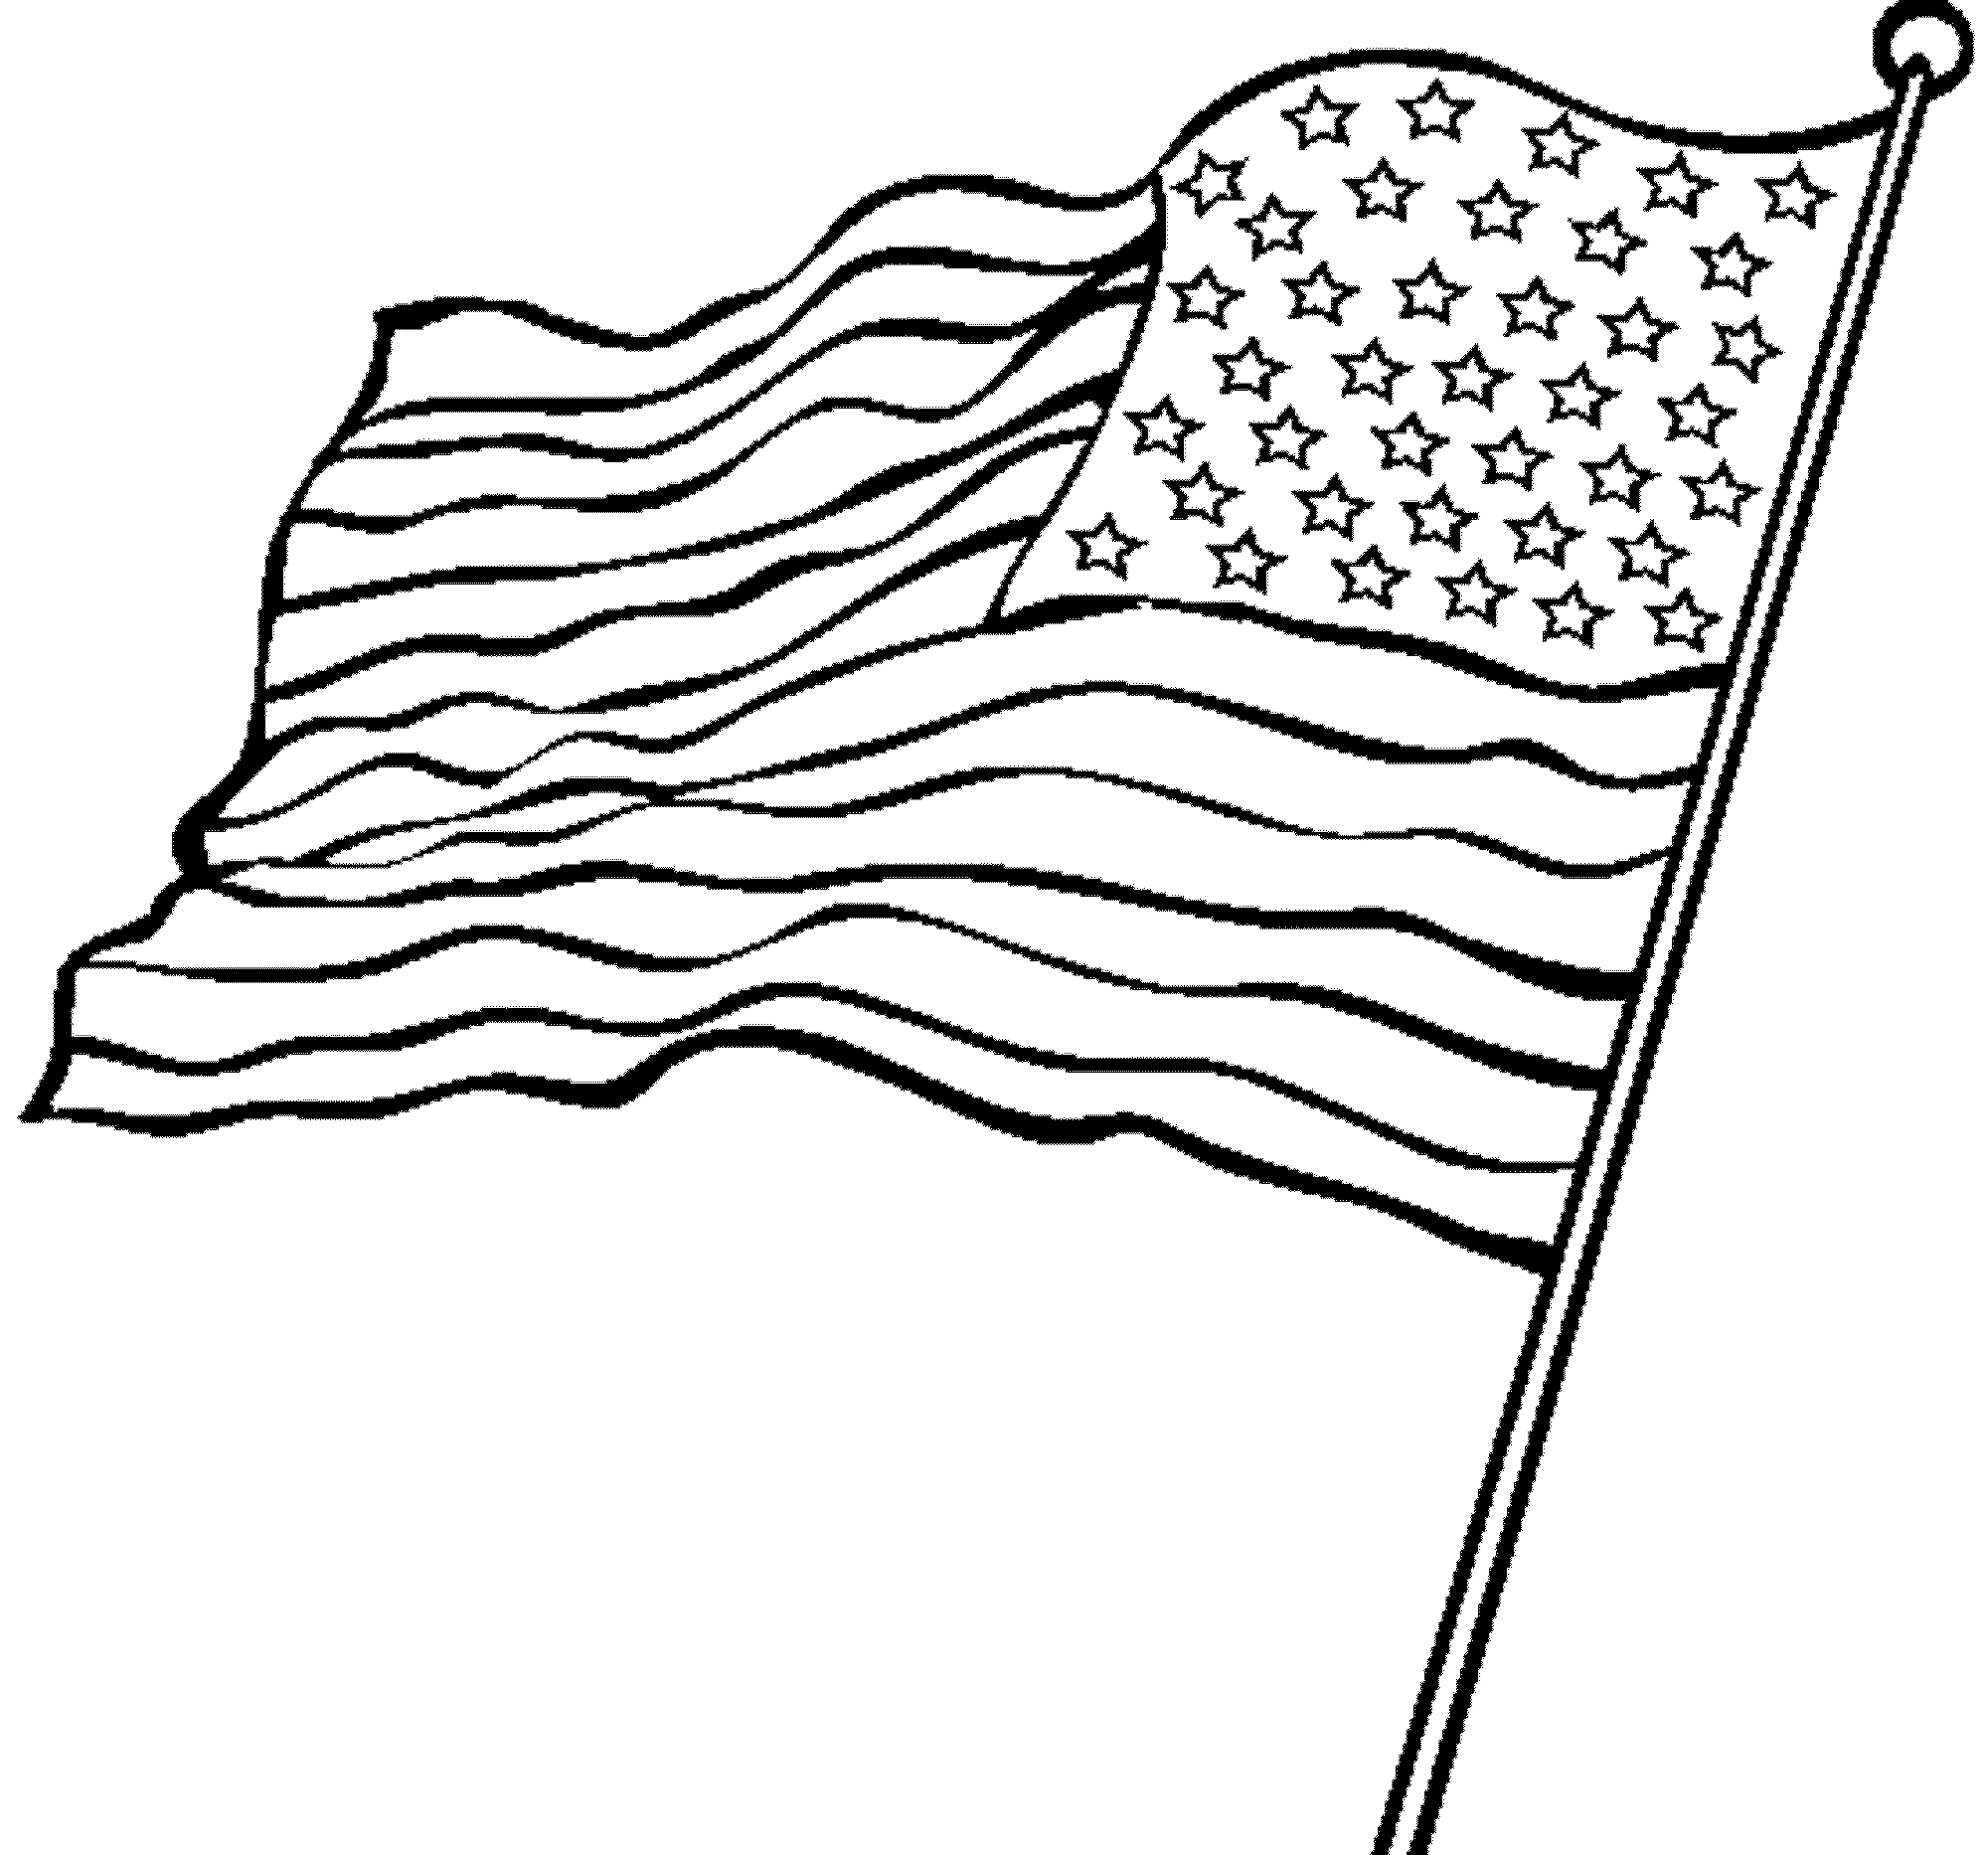 american flag coloring book coloring page american flag map book coloring flag american